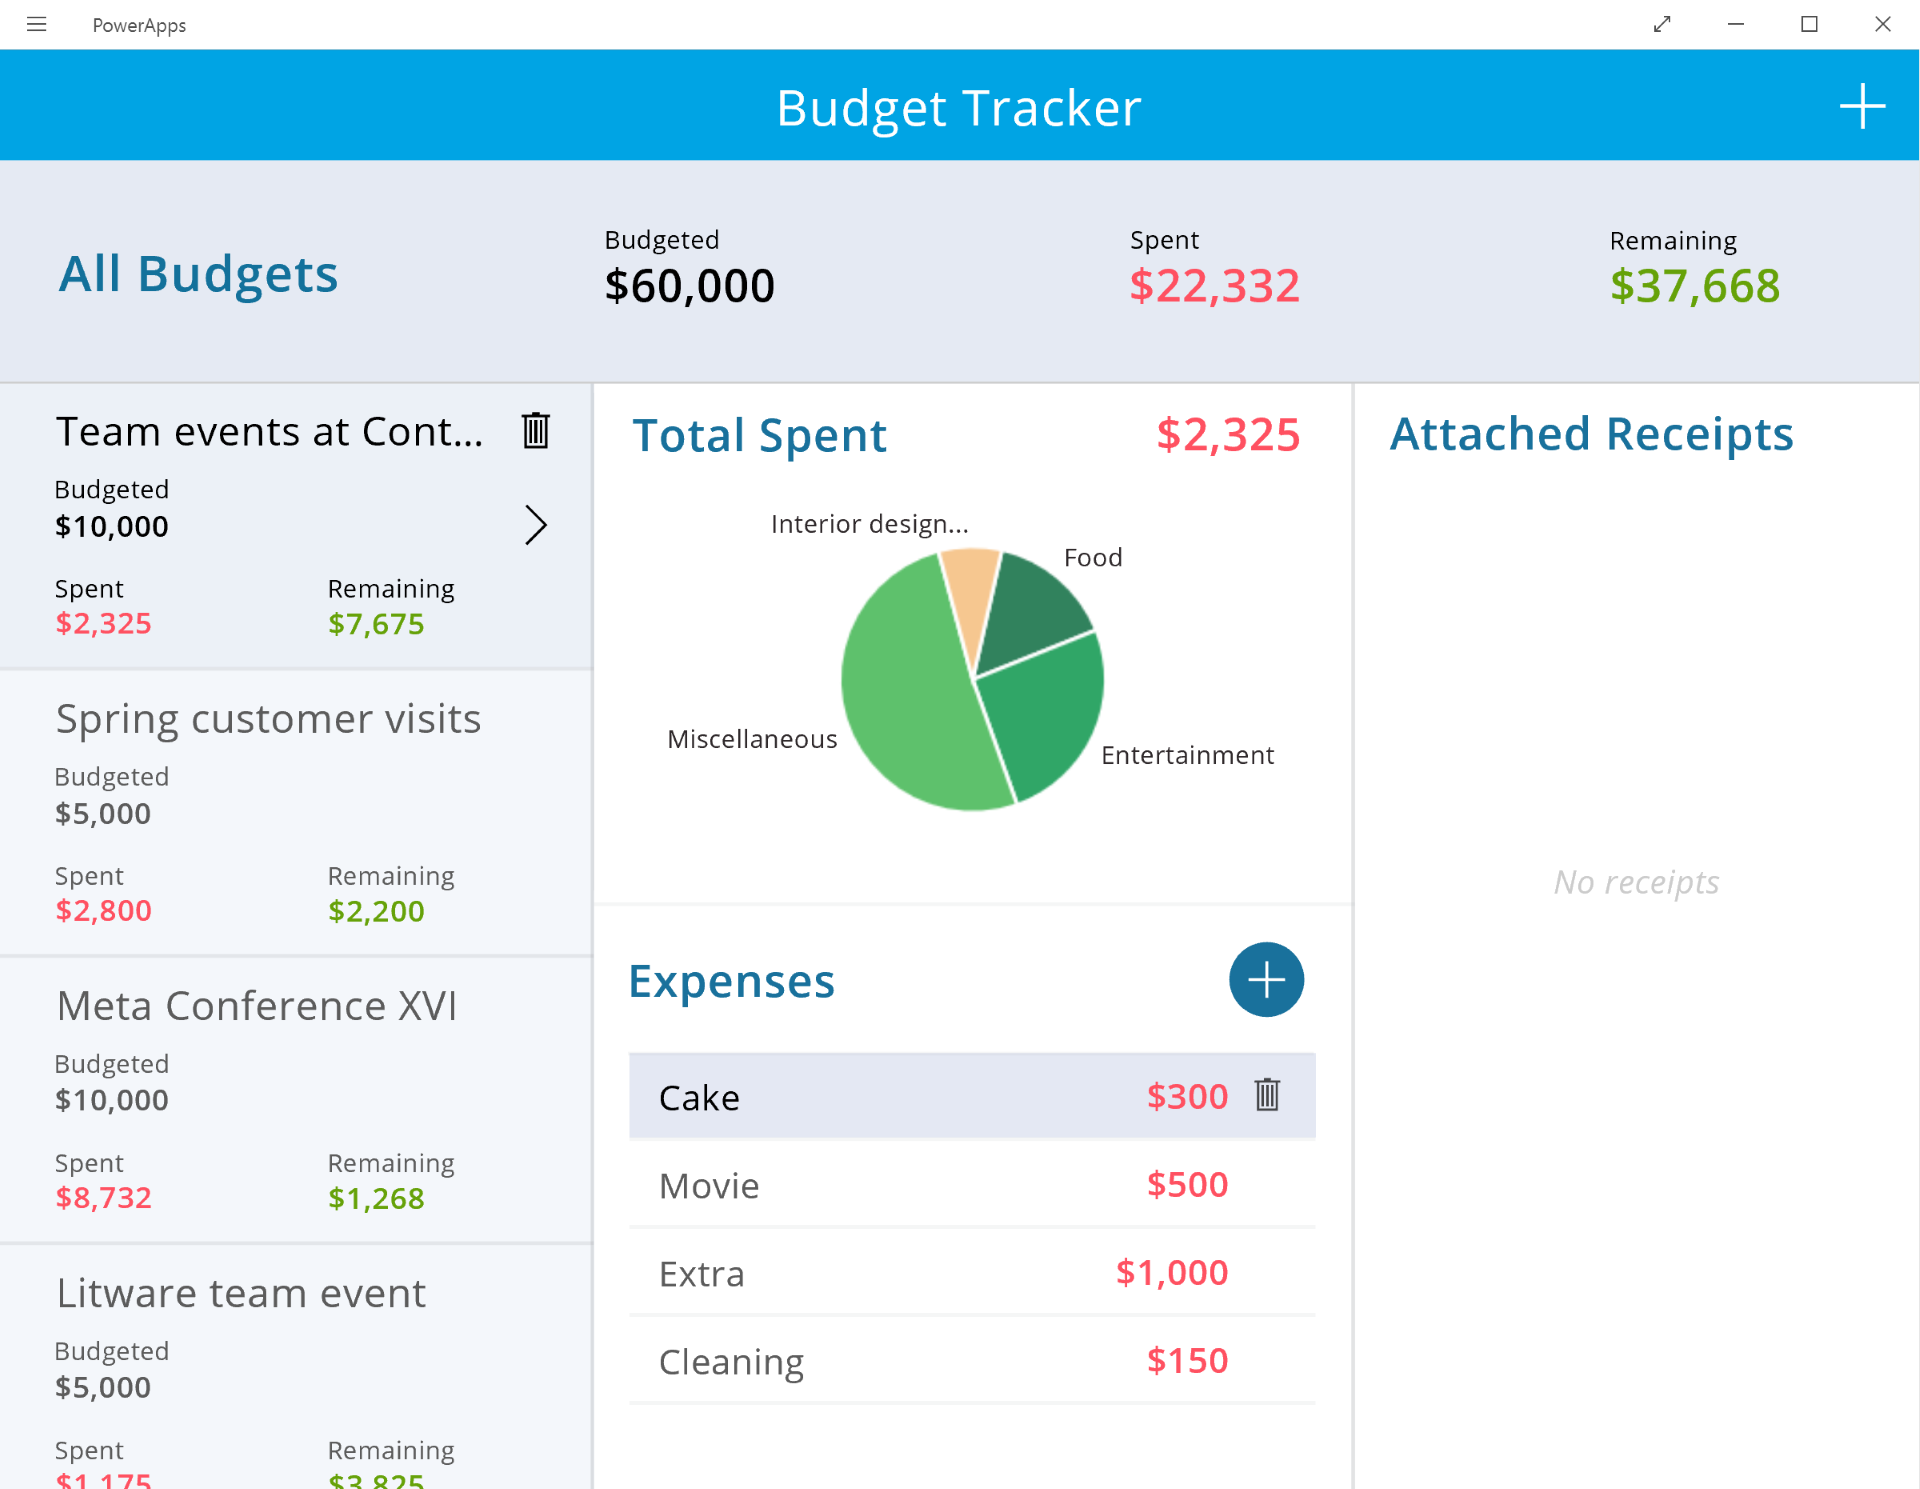 PowerApps Budget Tracker